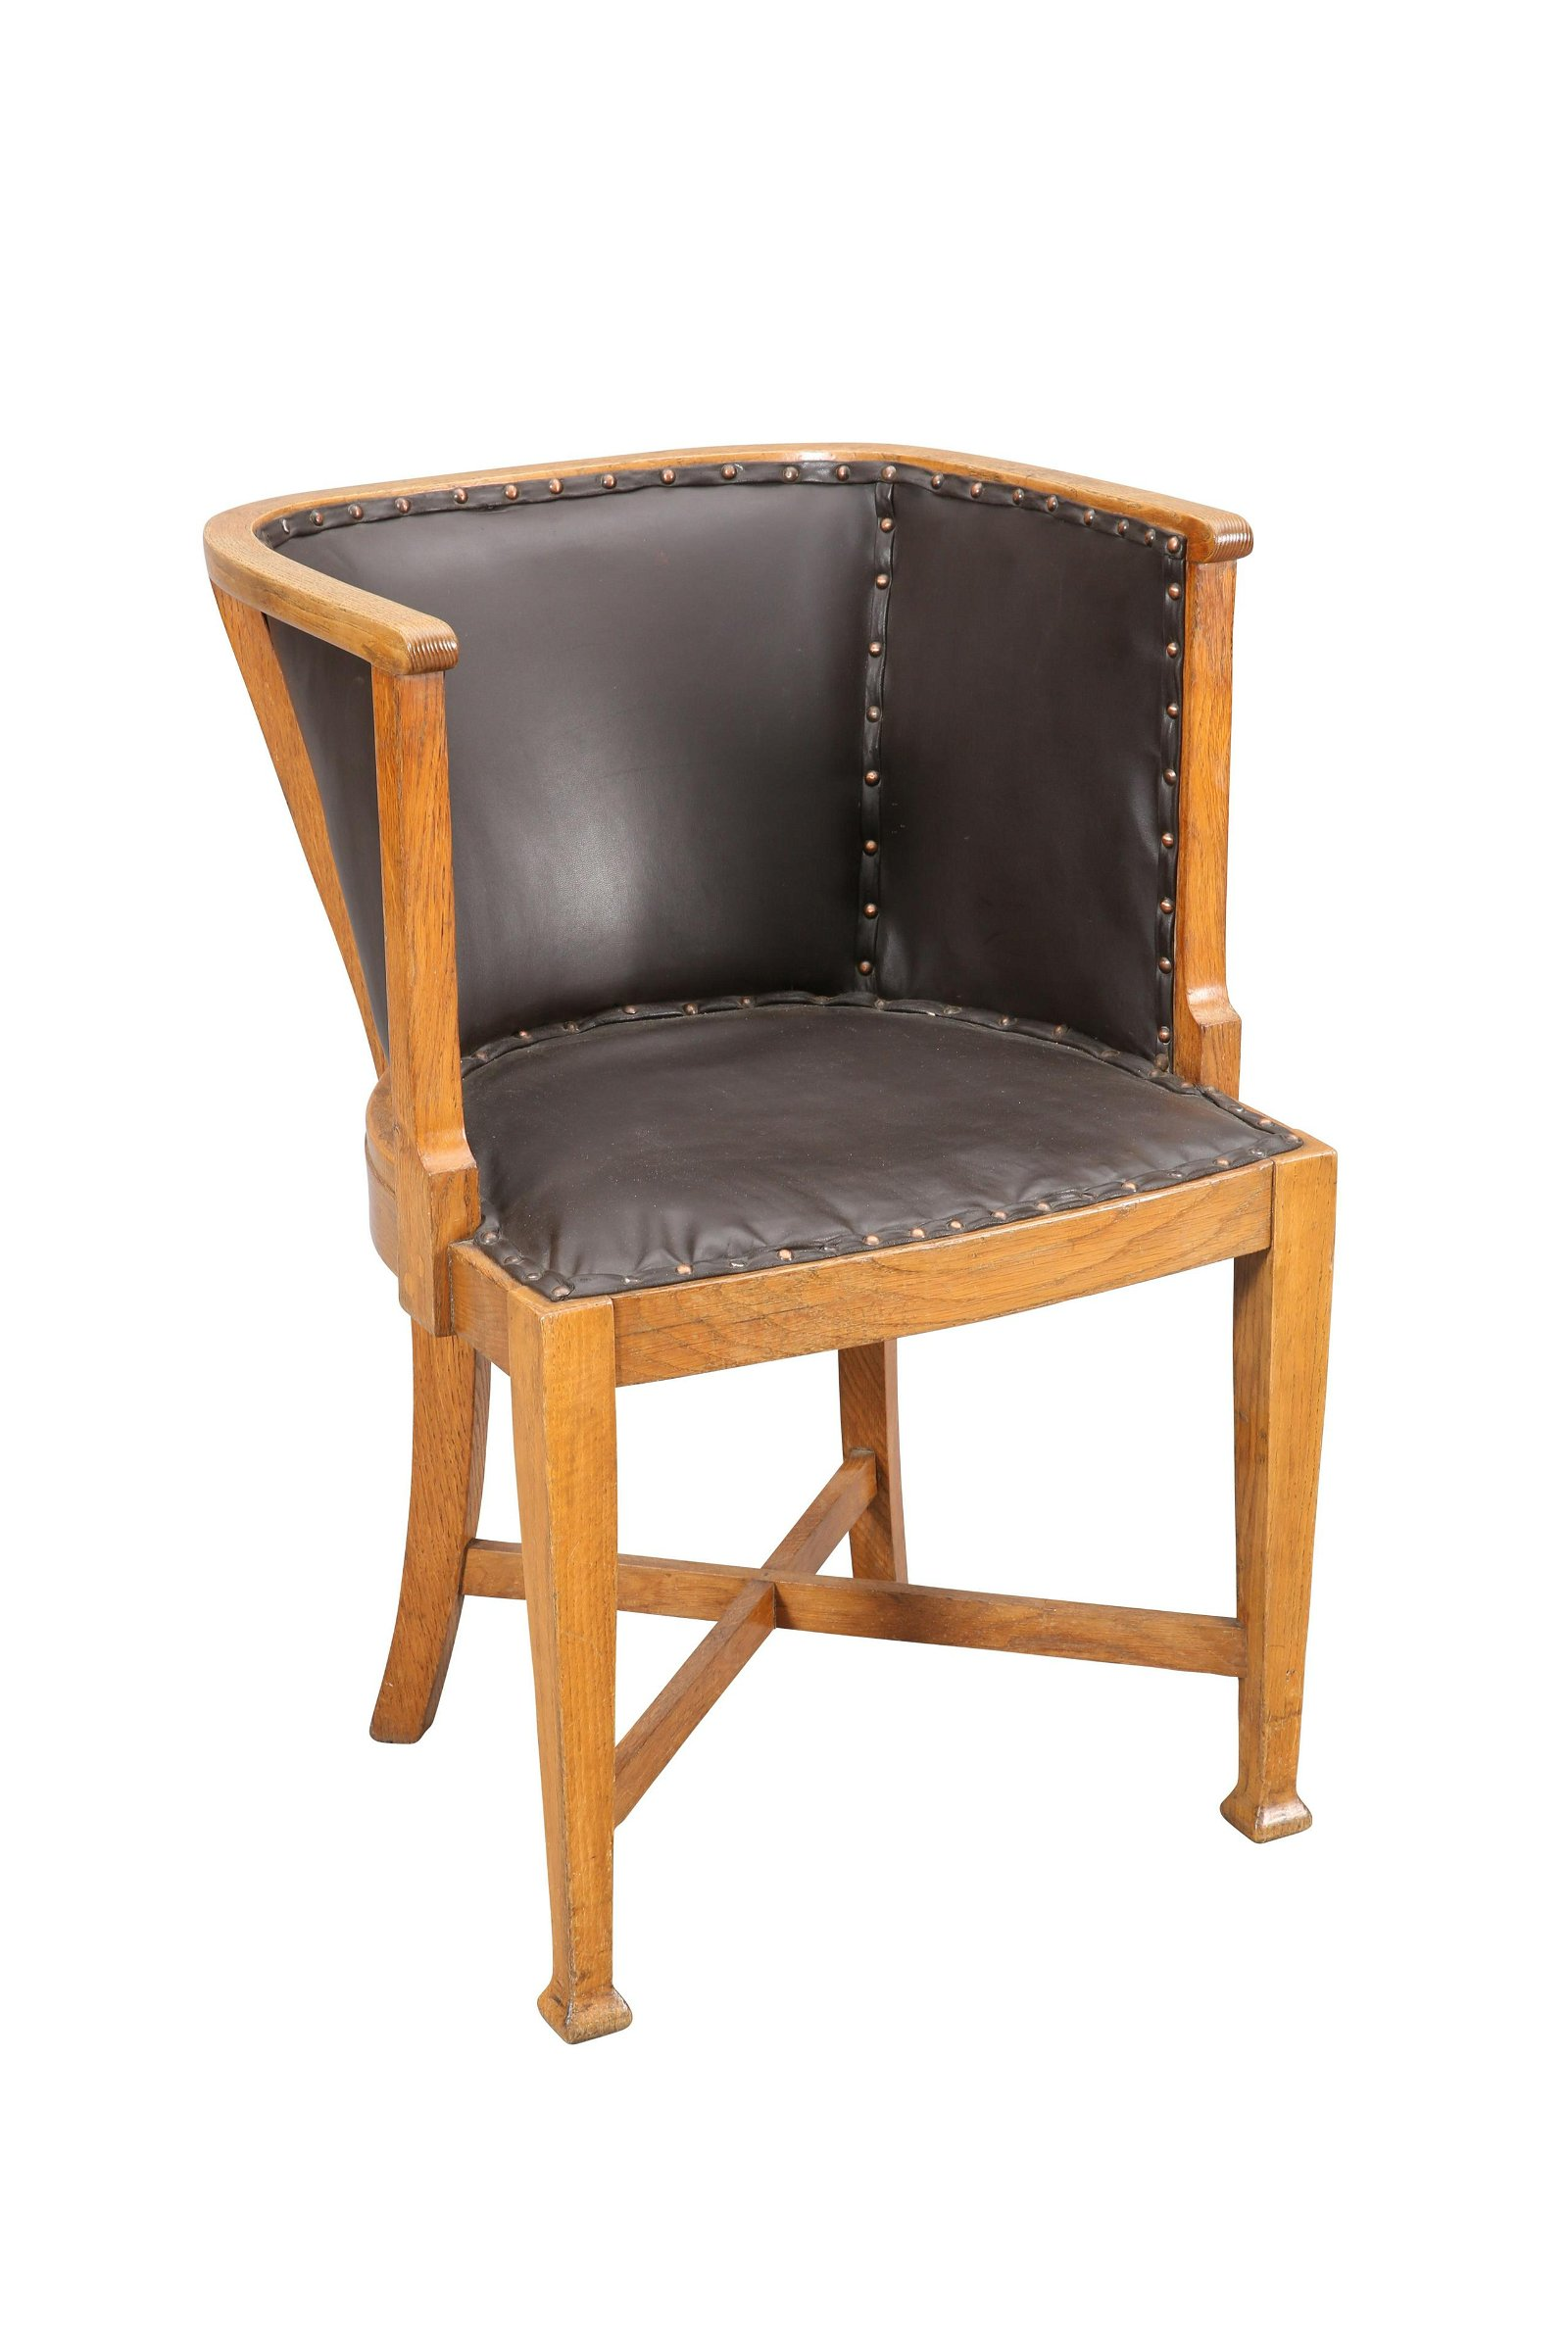 AN ARTS AND CRAFTS OAK TUB CHAIR, with square section